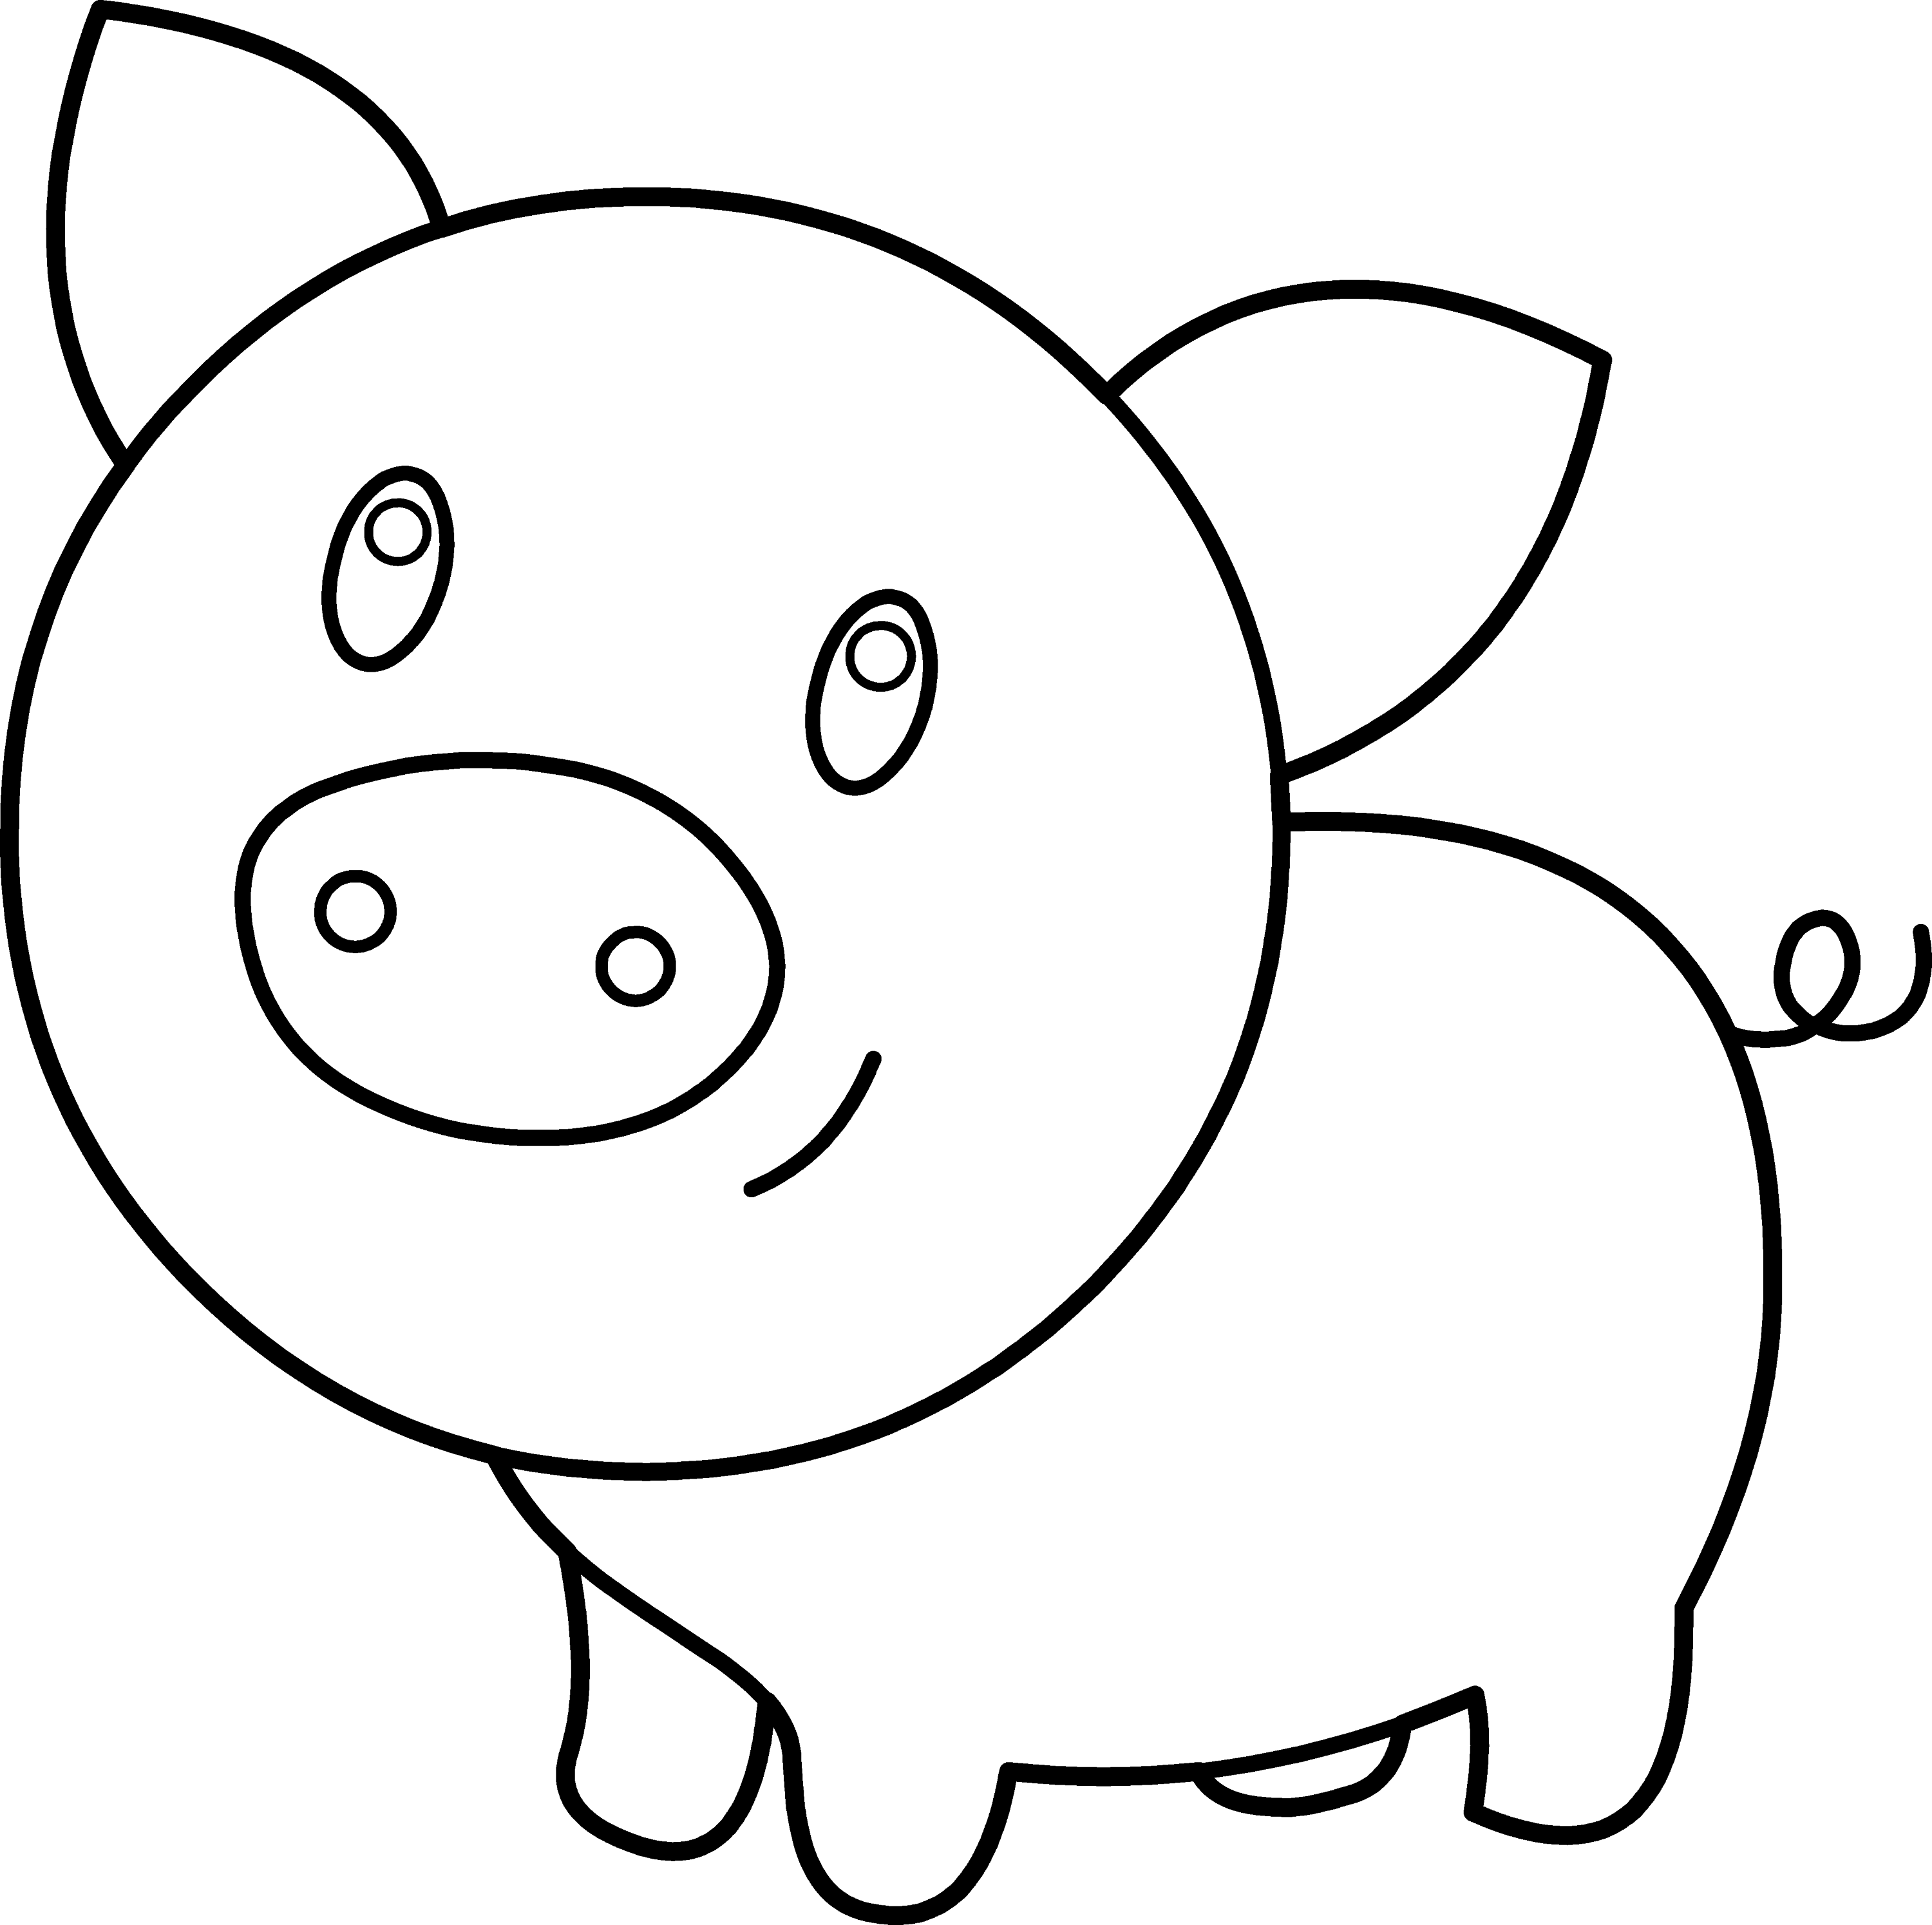 pig template for preschoolers - cute pig coloring page free clip art